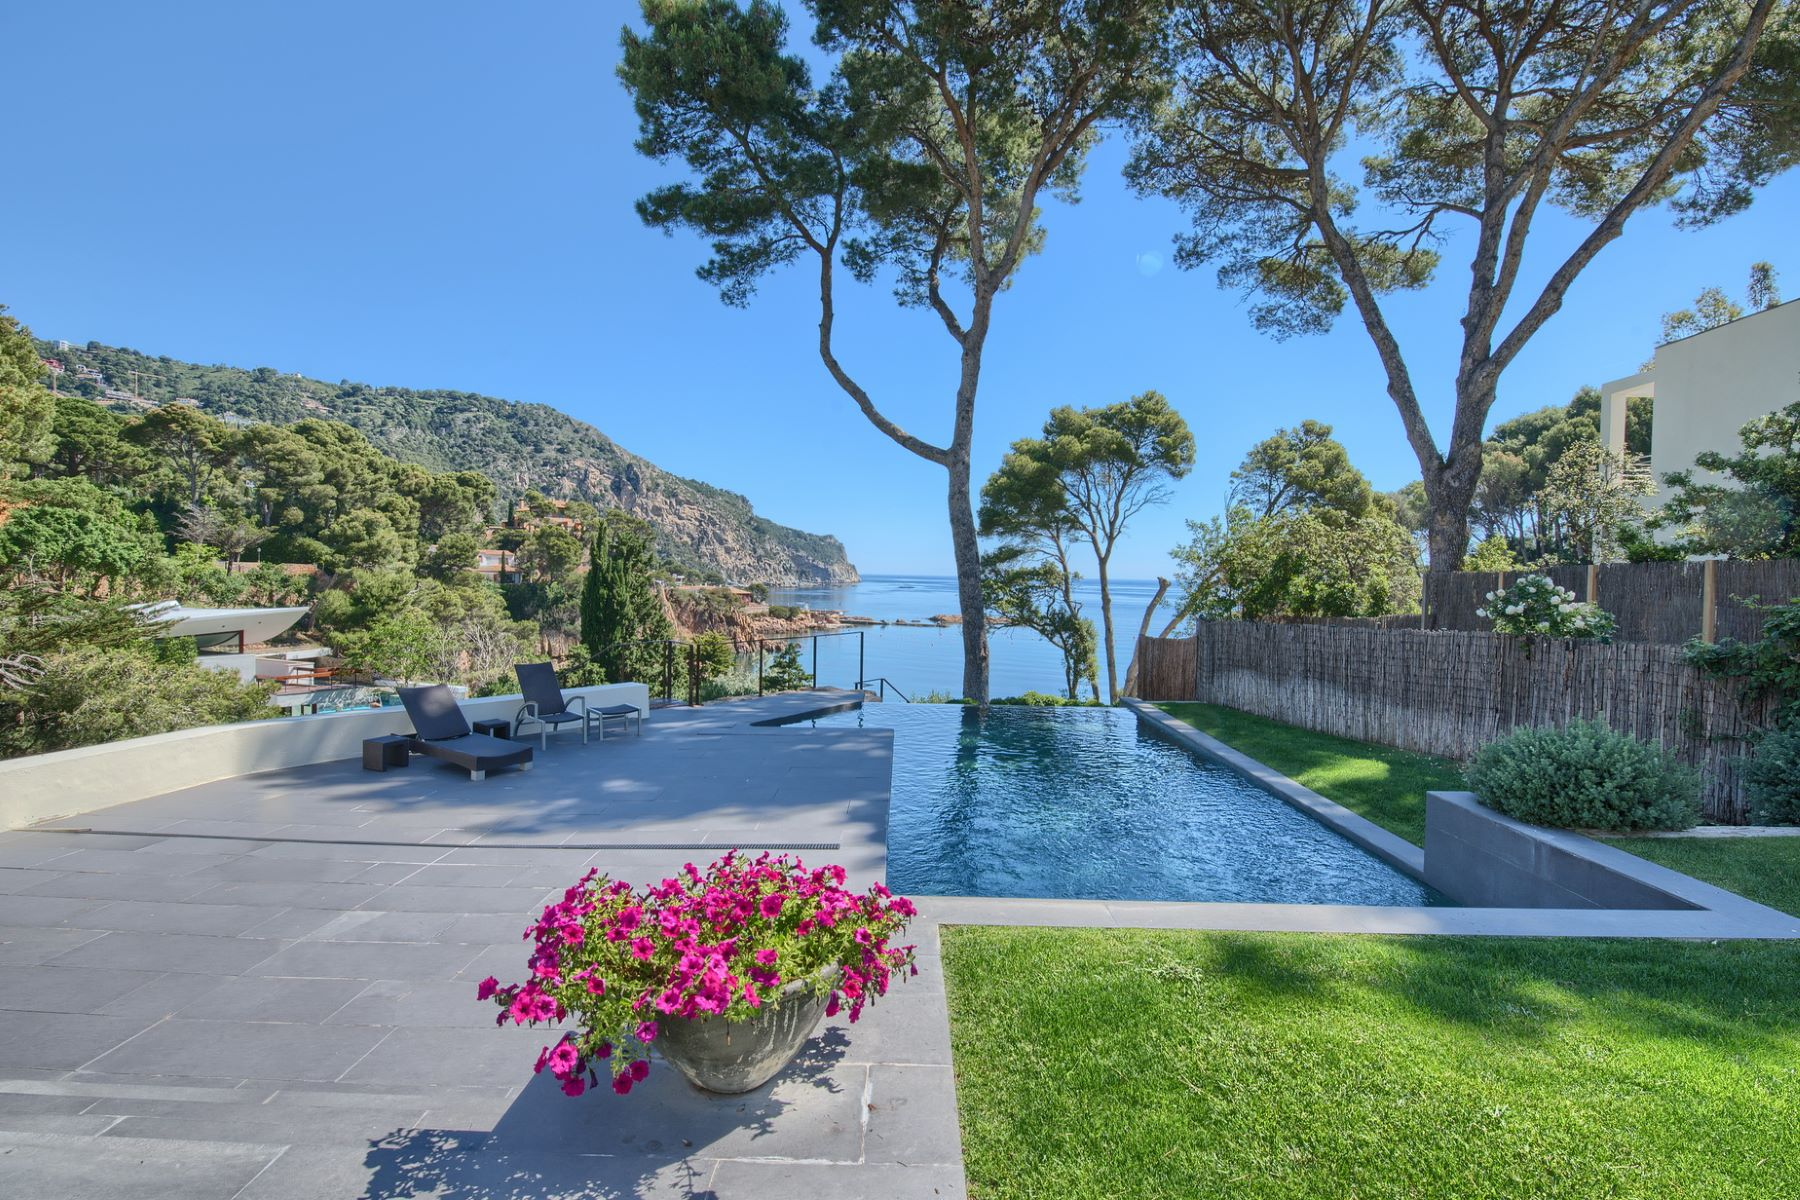 단독 가정 주택 용 매매 에 Magnificent modern sea front villa for sale in Aiguablava Begur, Costa Brava, 17255 스페인